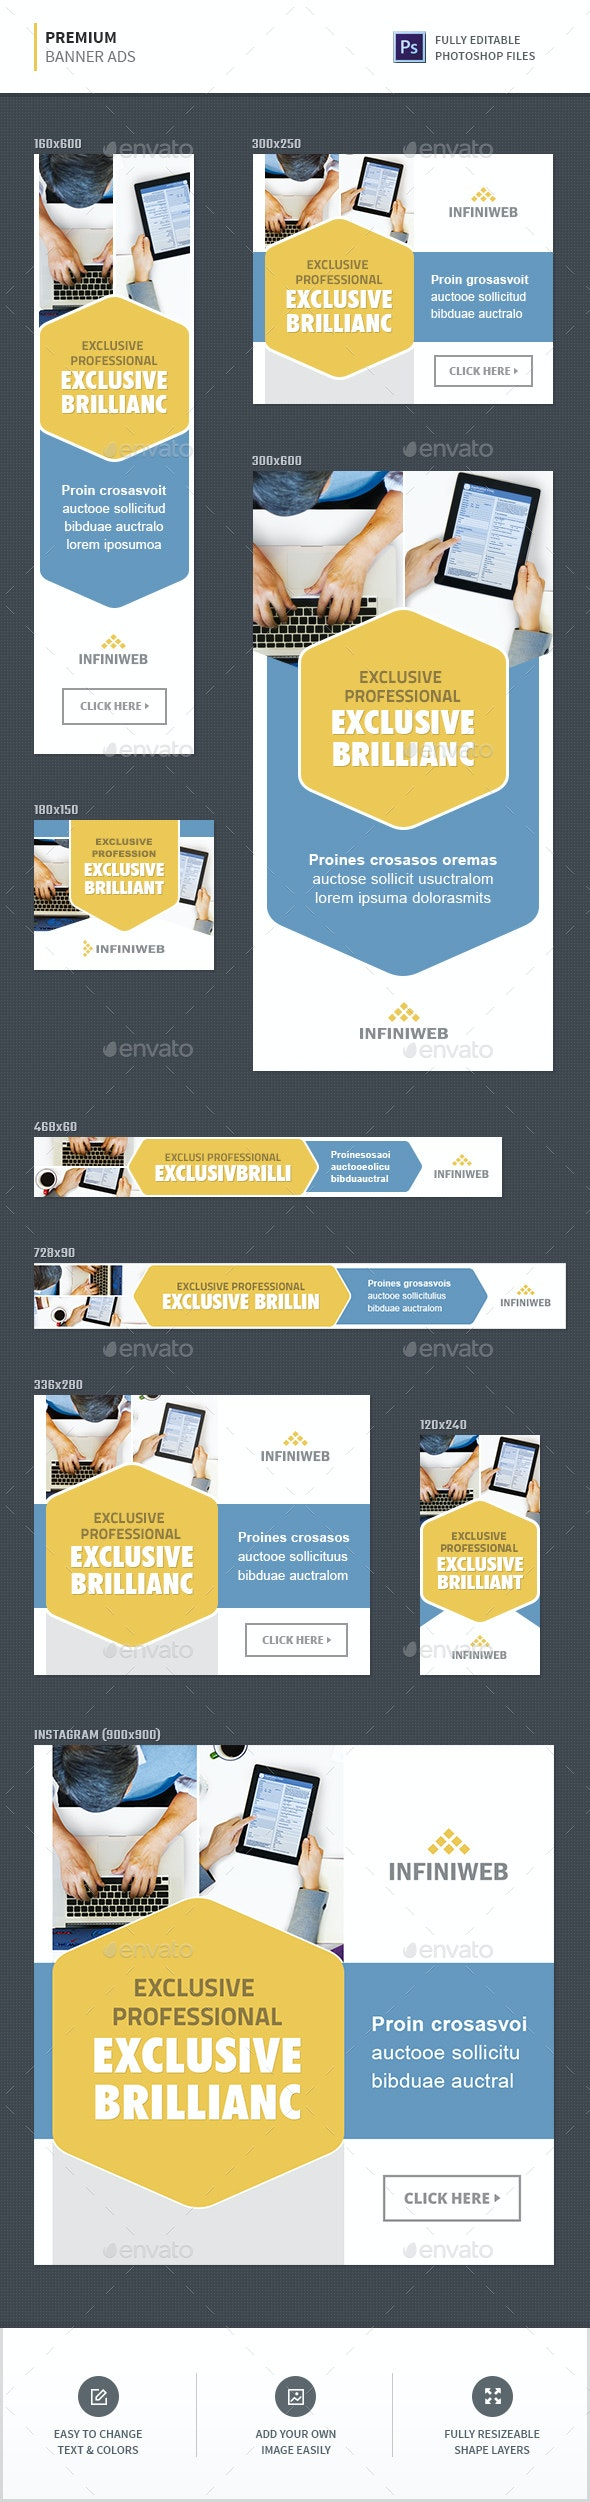 Premium Banner Ads - Banners & Ads Web Elements